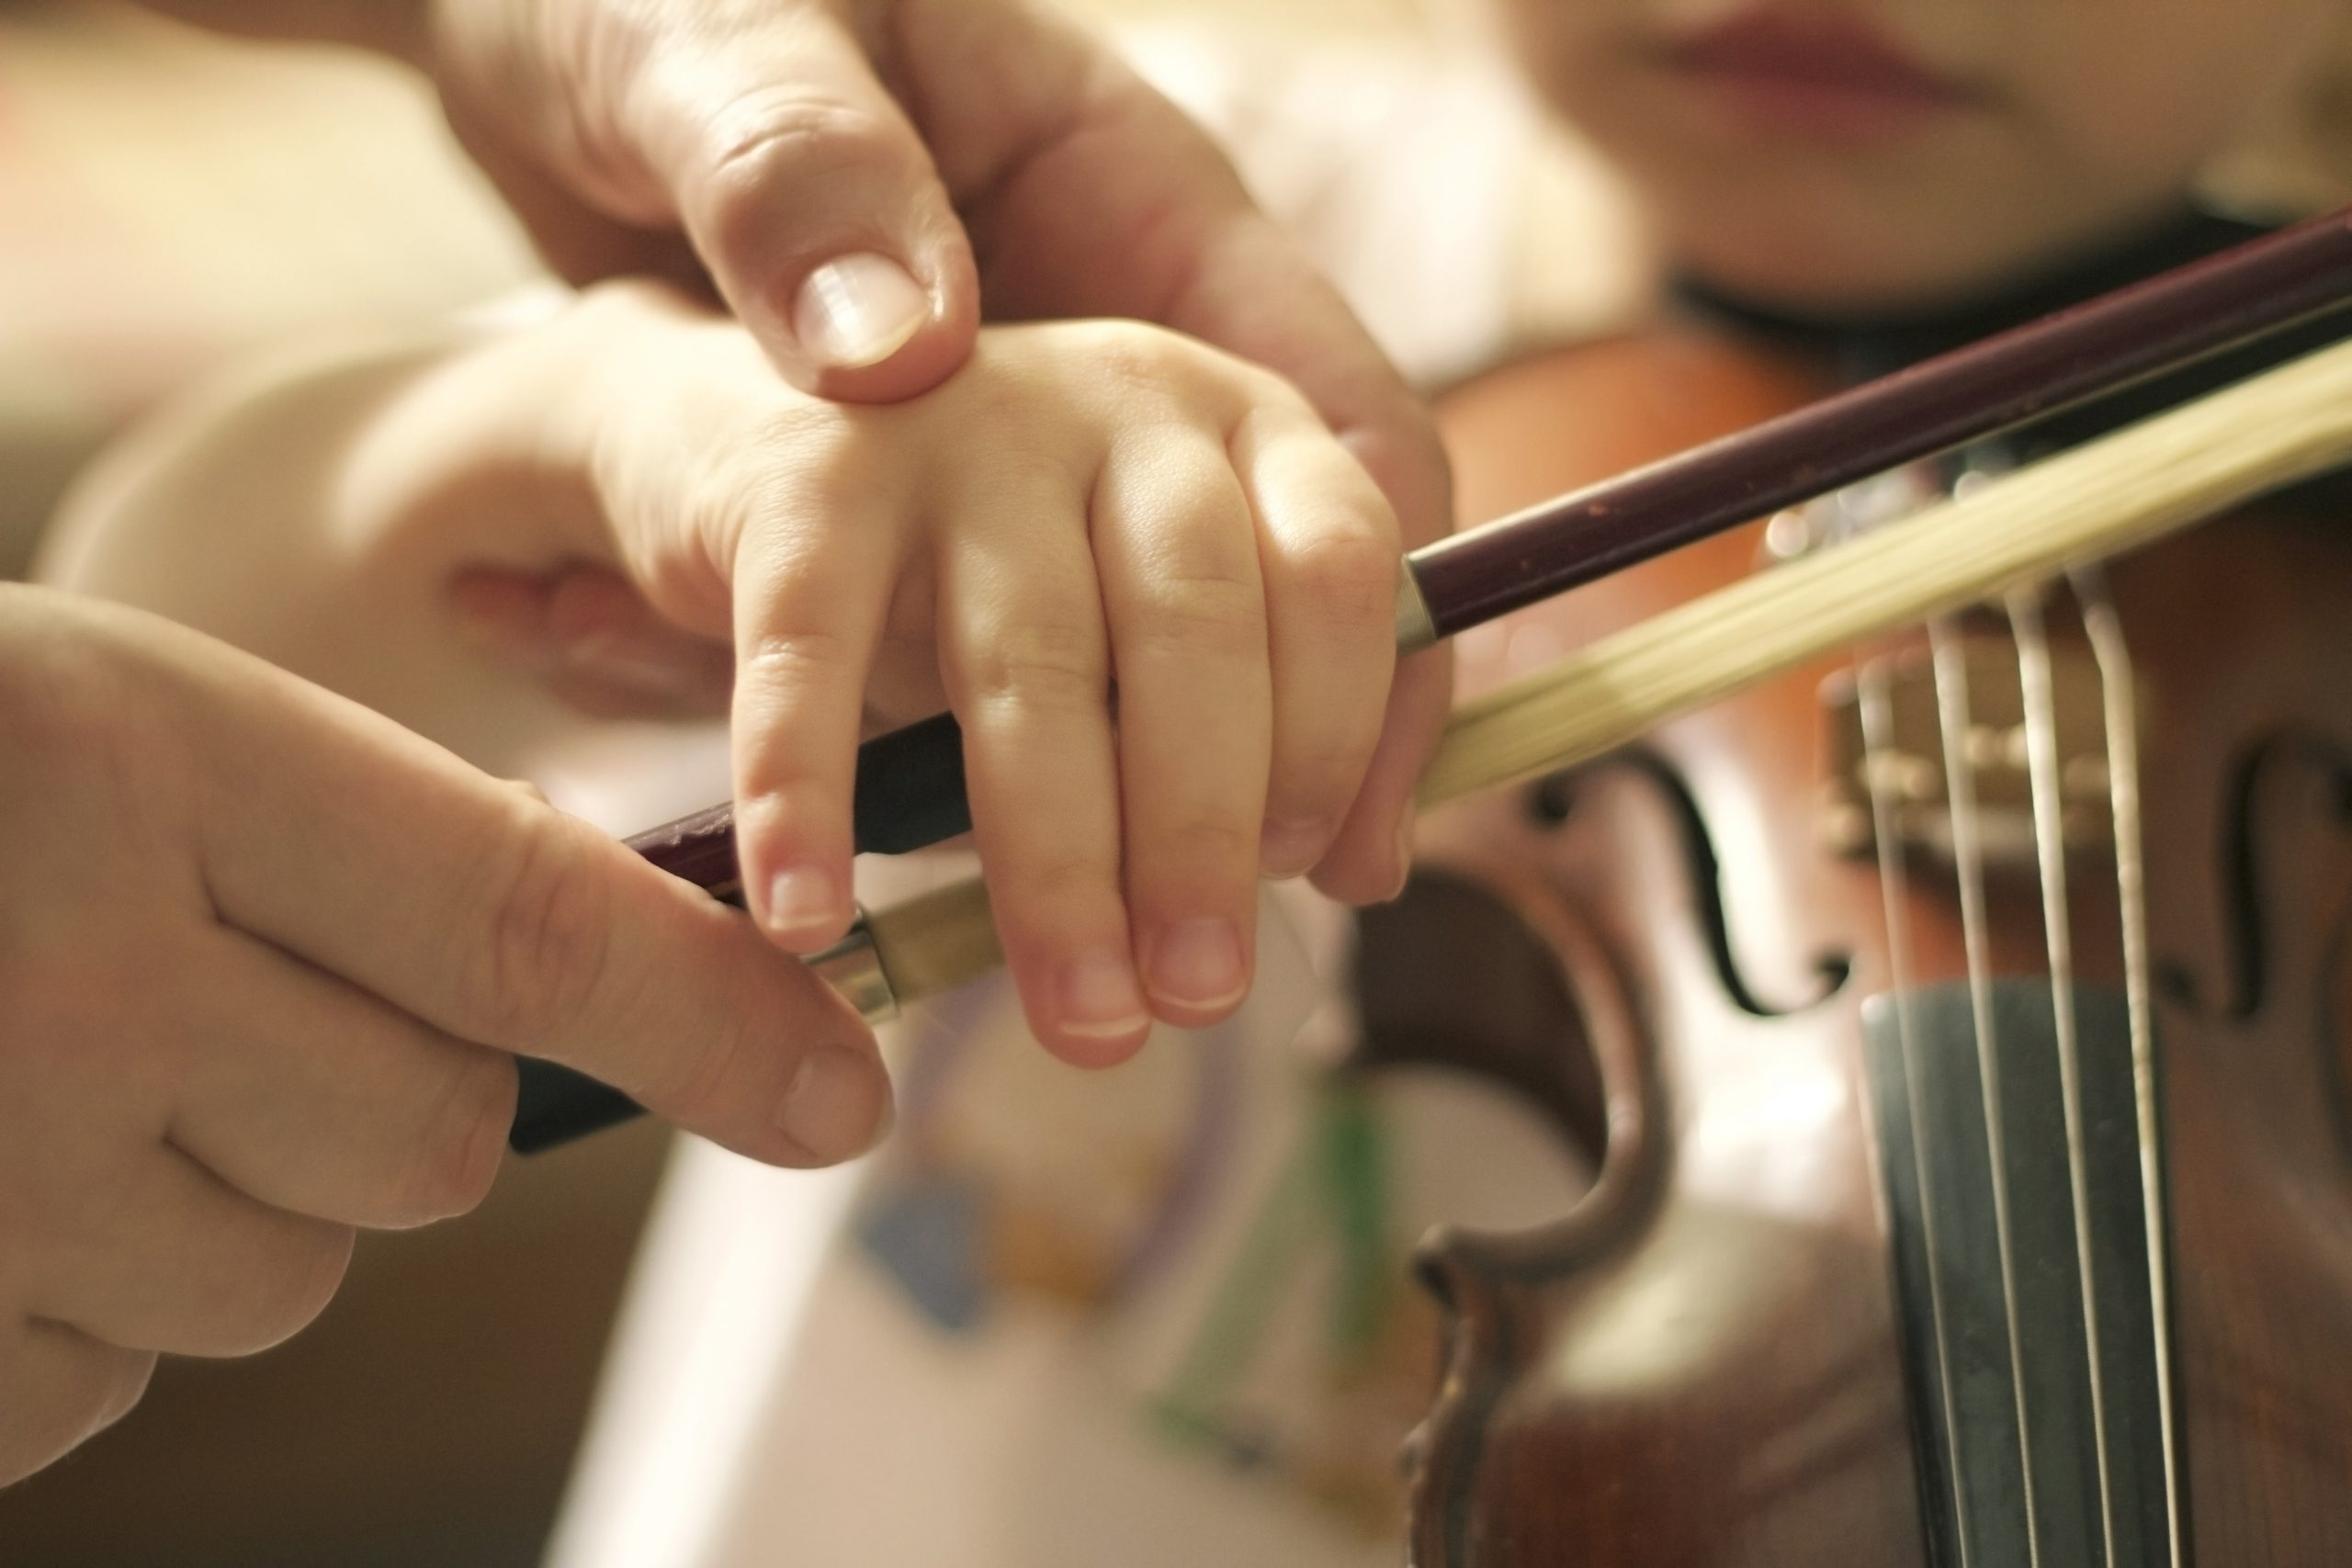 a-kid-playing-a-violin